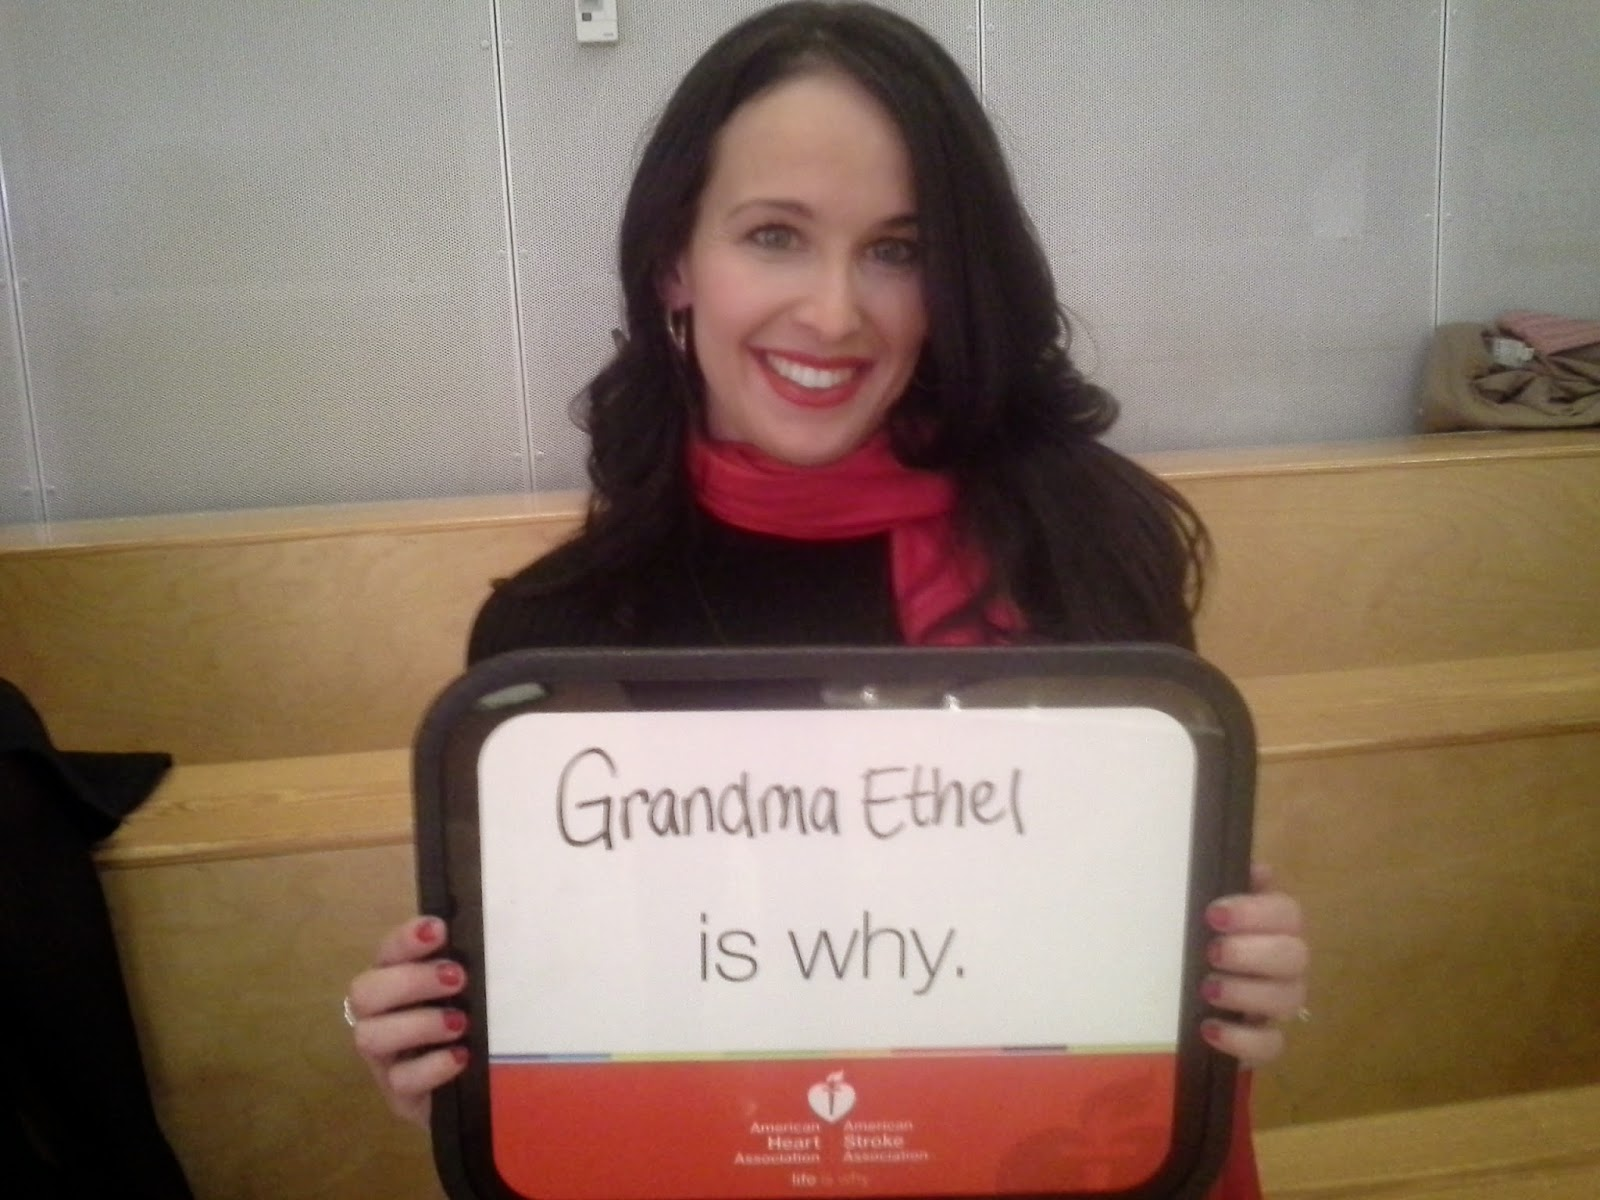 American Heart Association Go Red for Women: Grandma Ethel Is Why